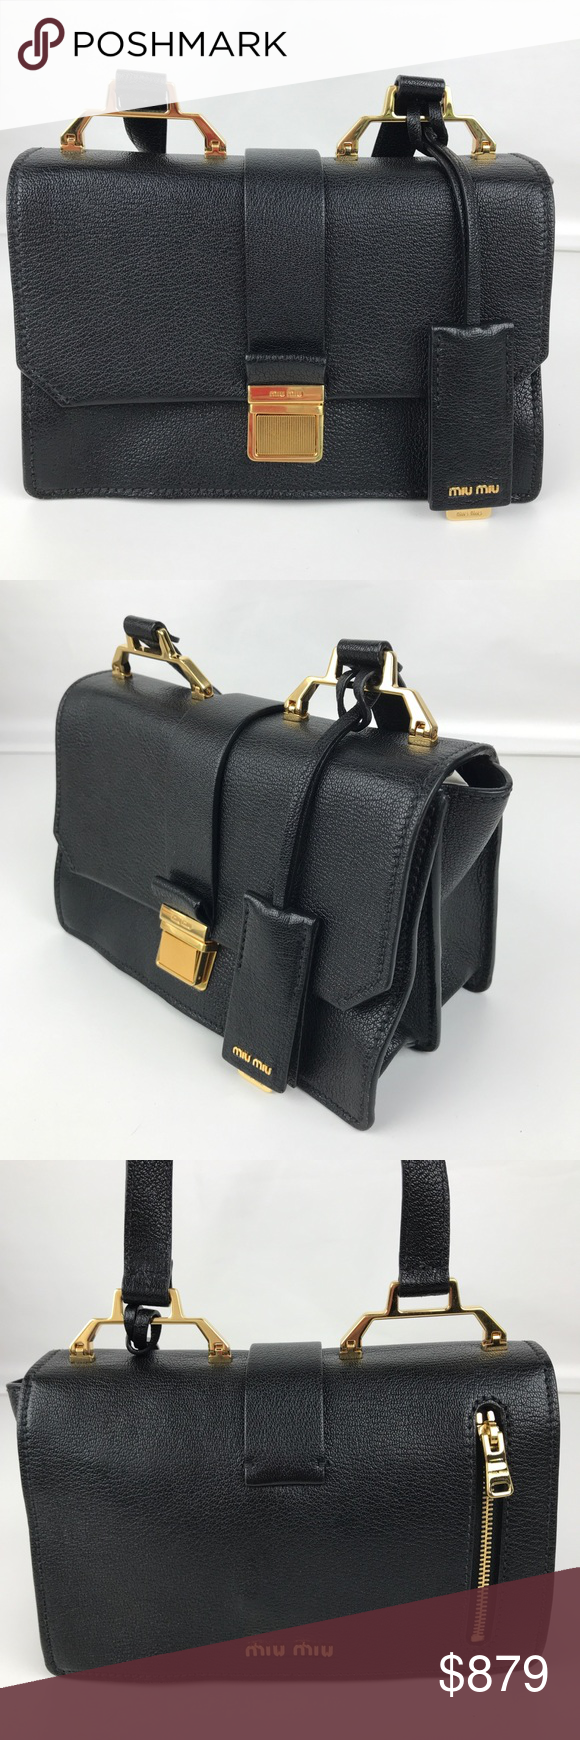 New Miu Miu Madras Black Leather Shoulder Bag. Authentic Miu Miu style  5BH609. New, with Tags, Authenticity Card and Care Card. cfba7771fa